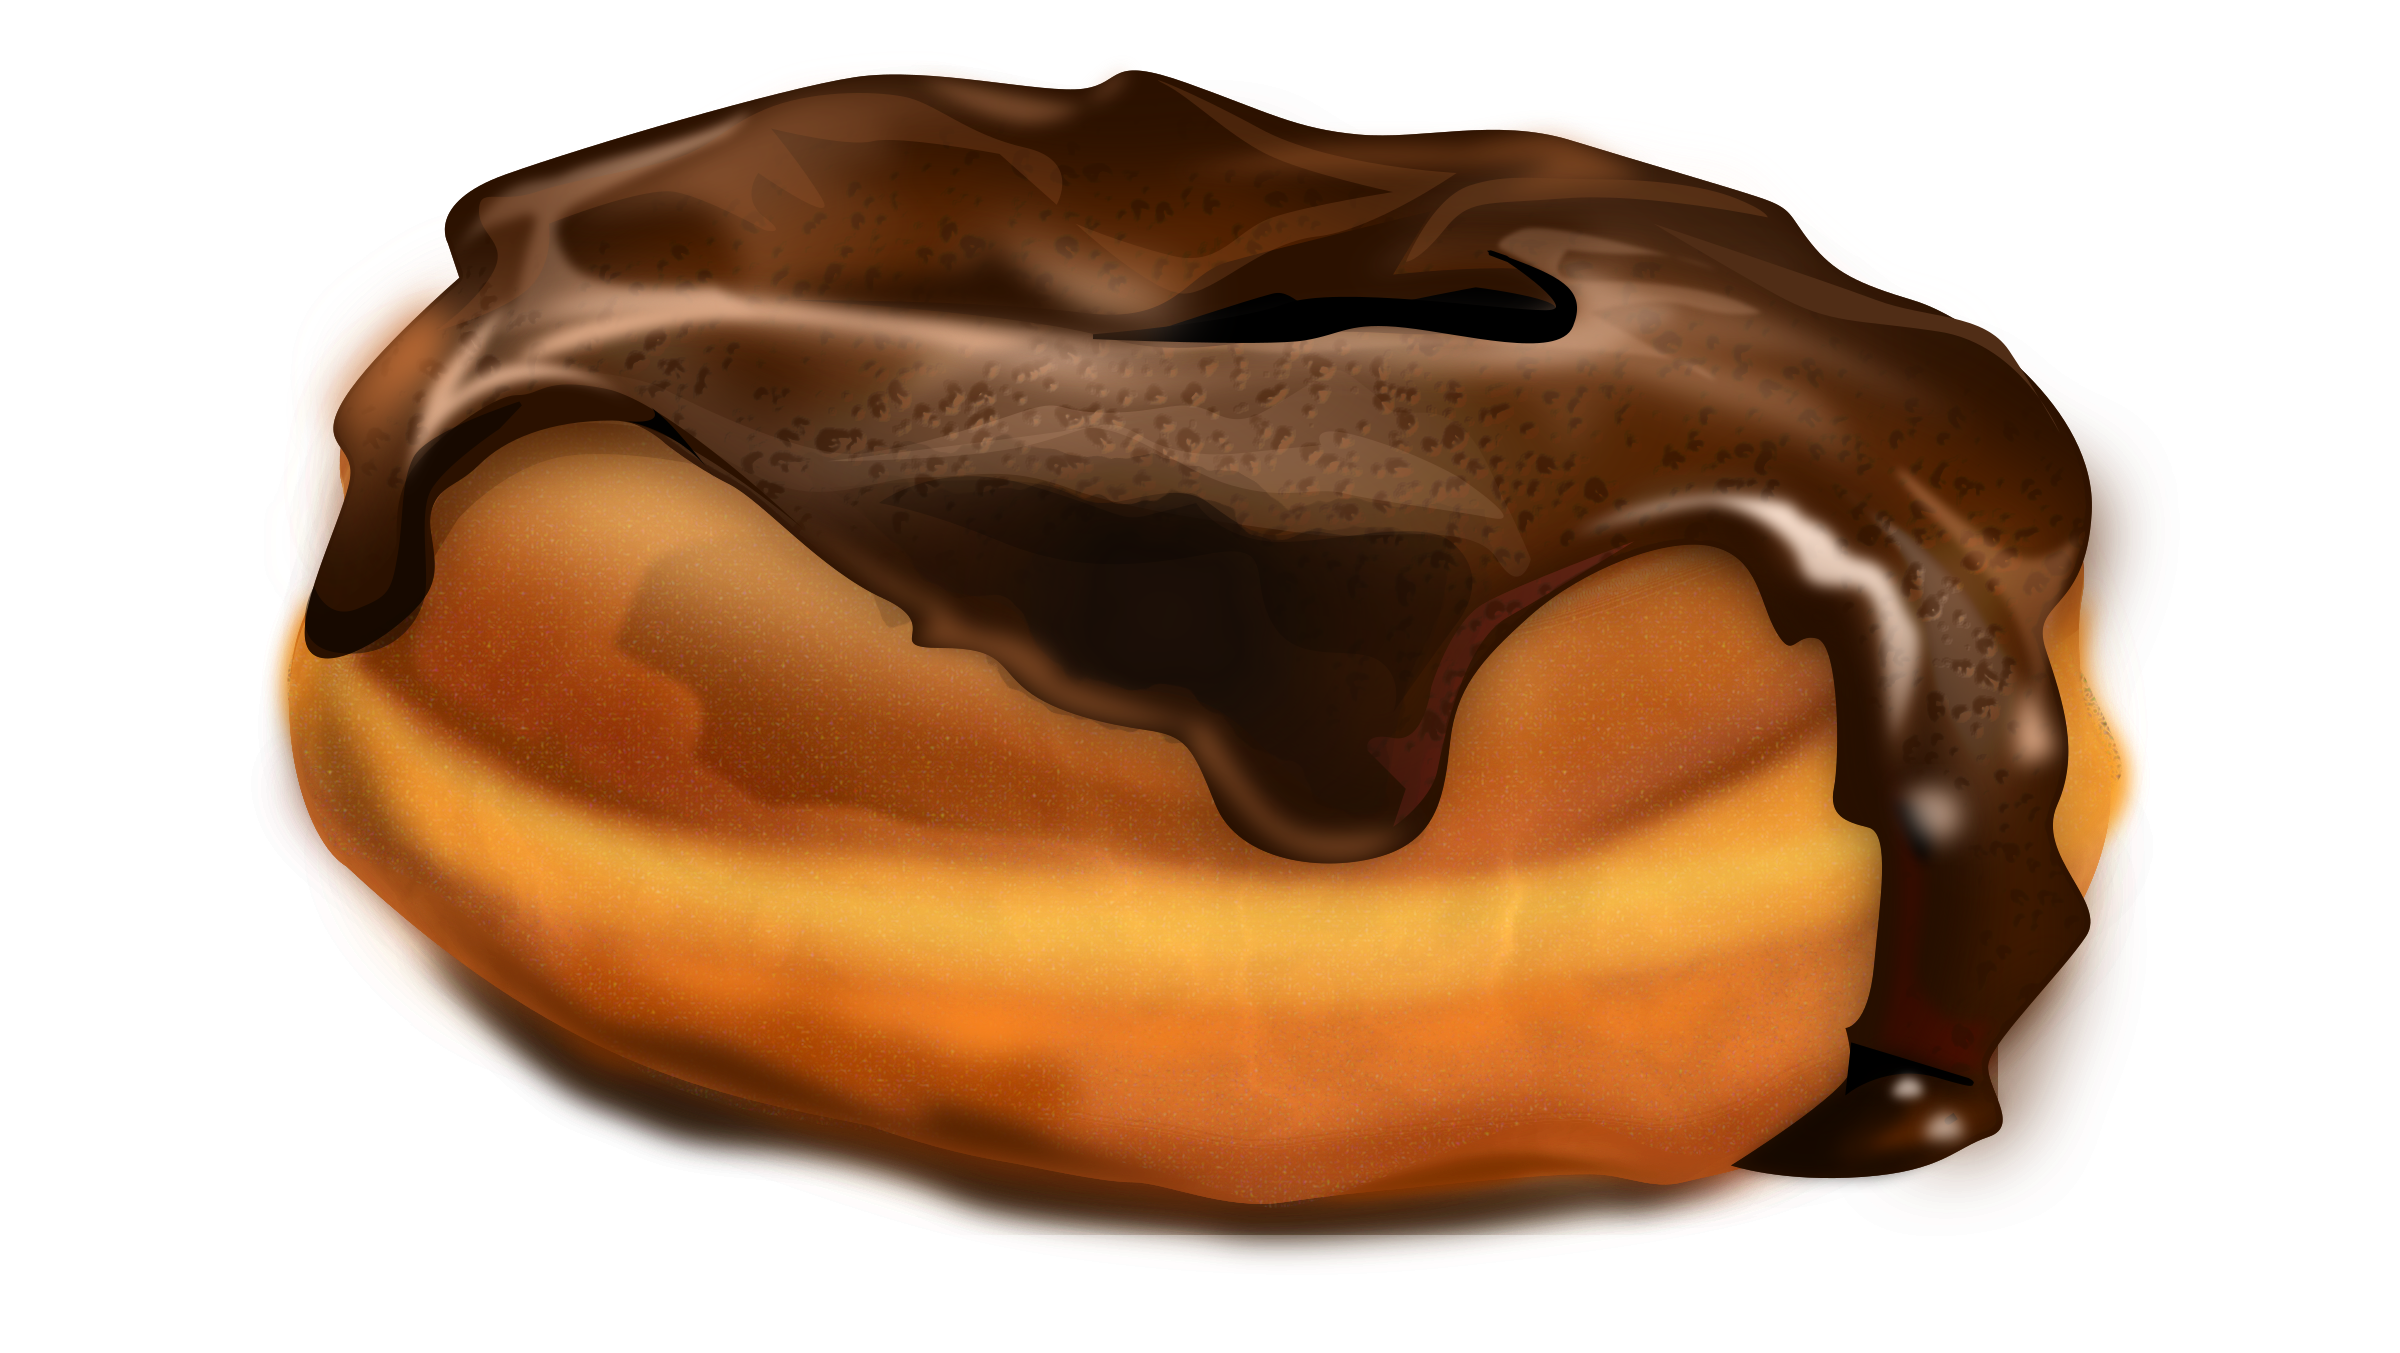 Chocolate Donut by rayscaperesource